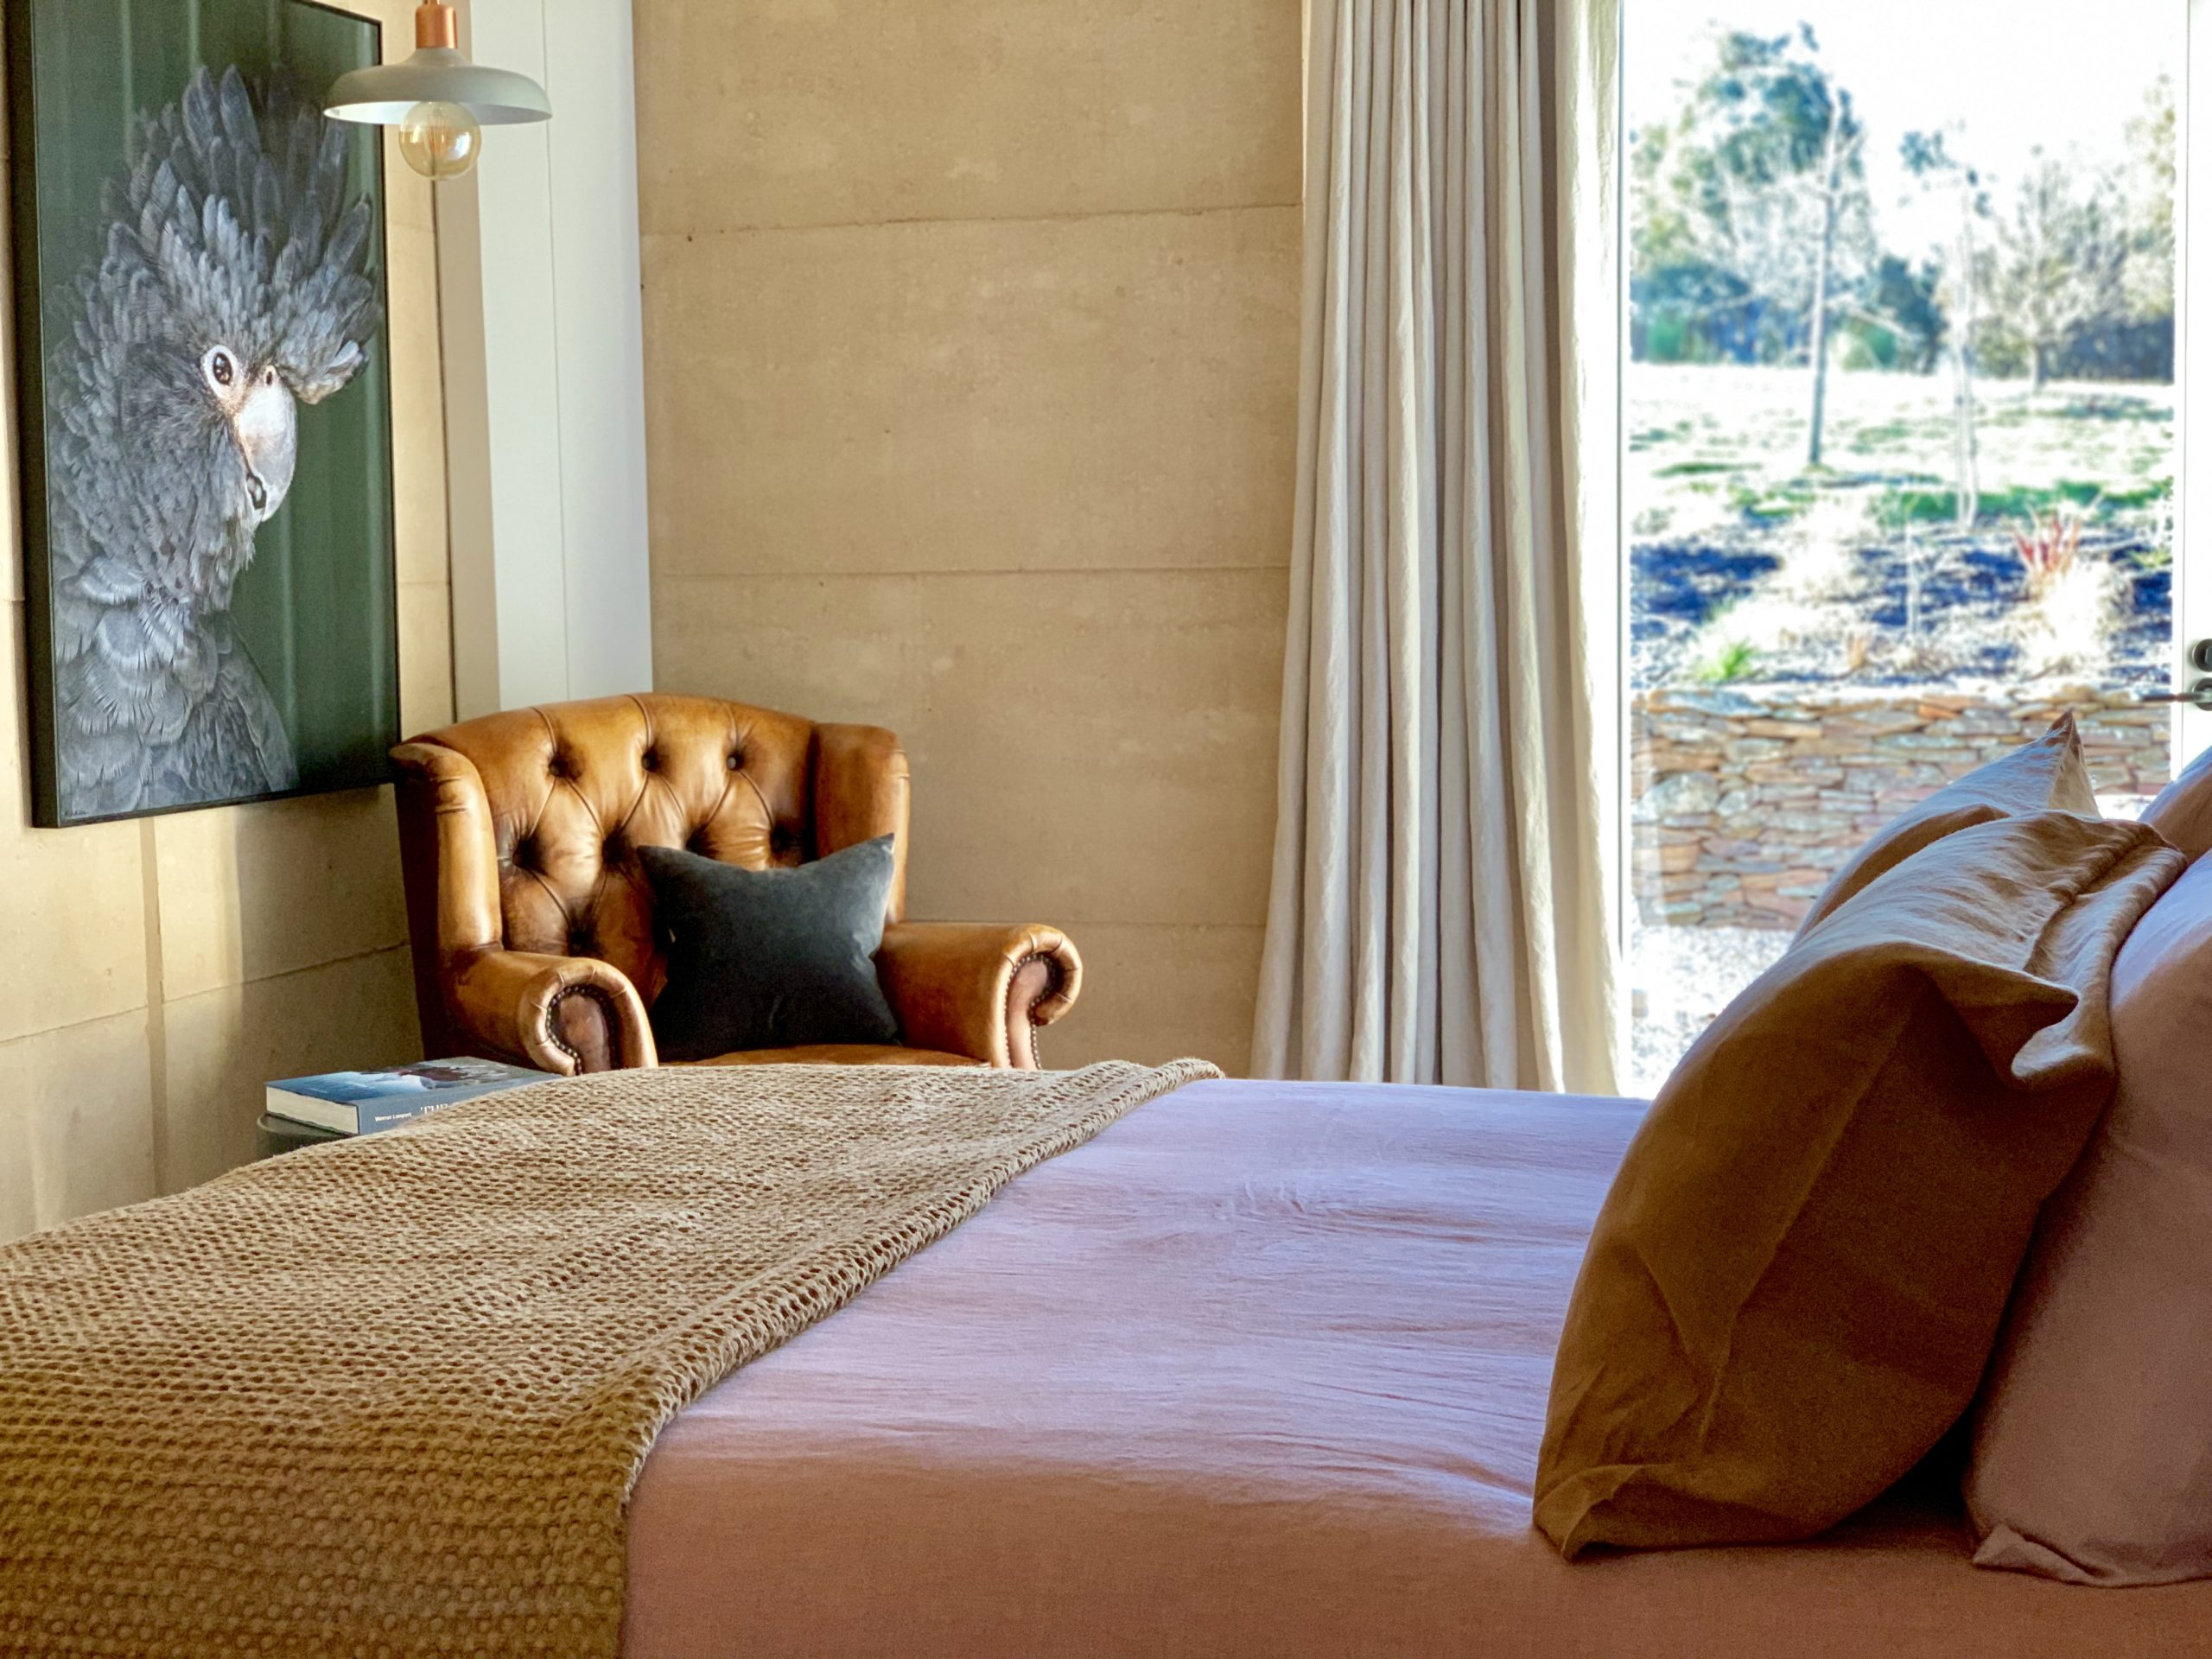 Luxury Country Getaway at The Barn at Nguurruu , NSW - Giddy Guest